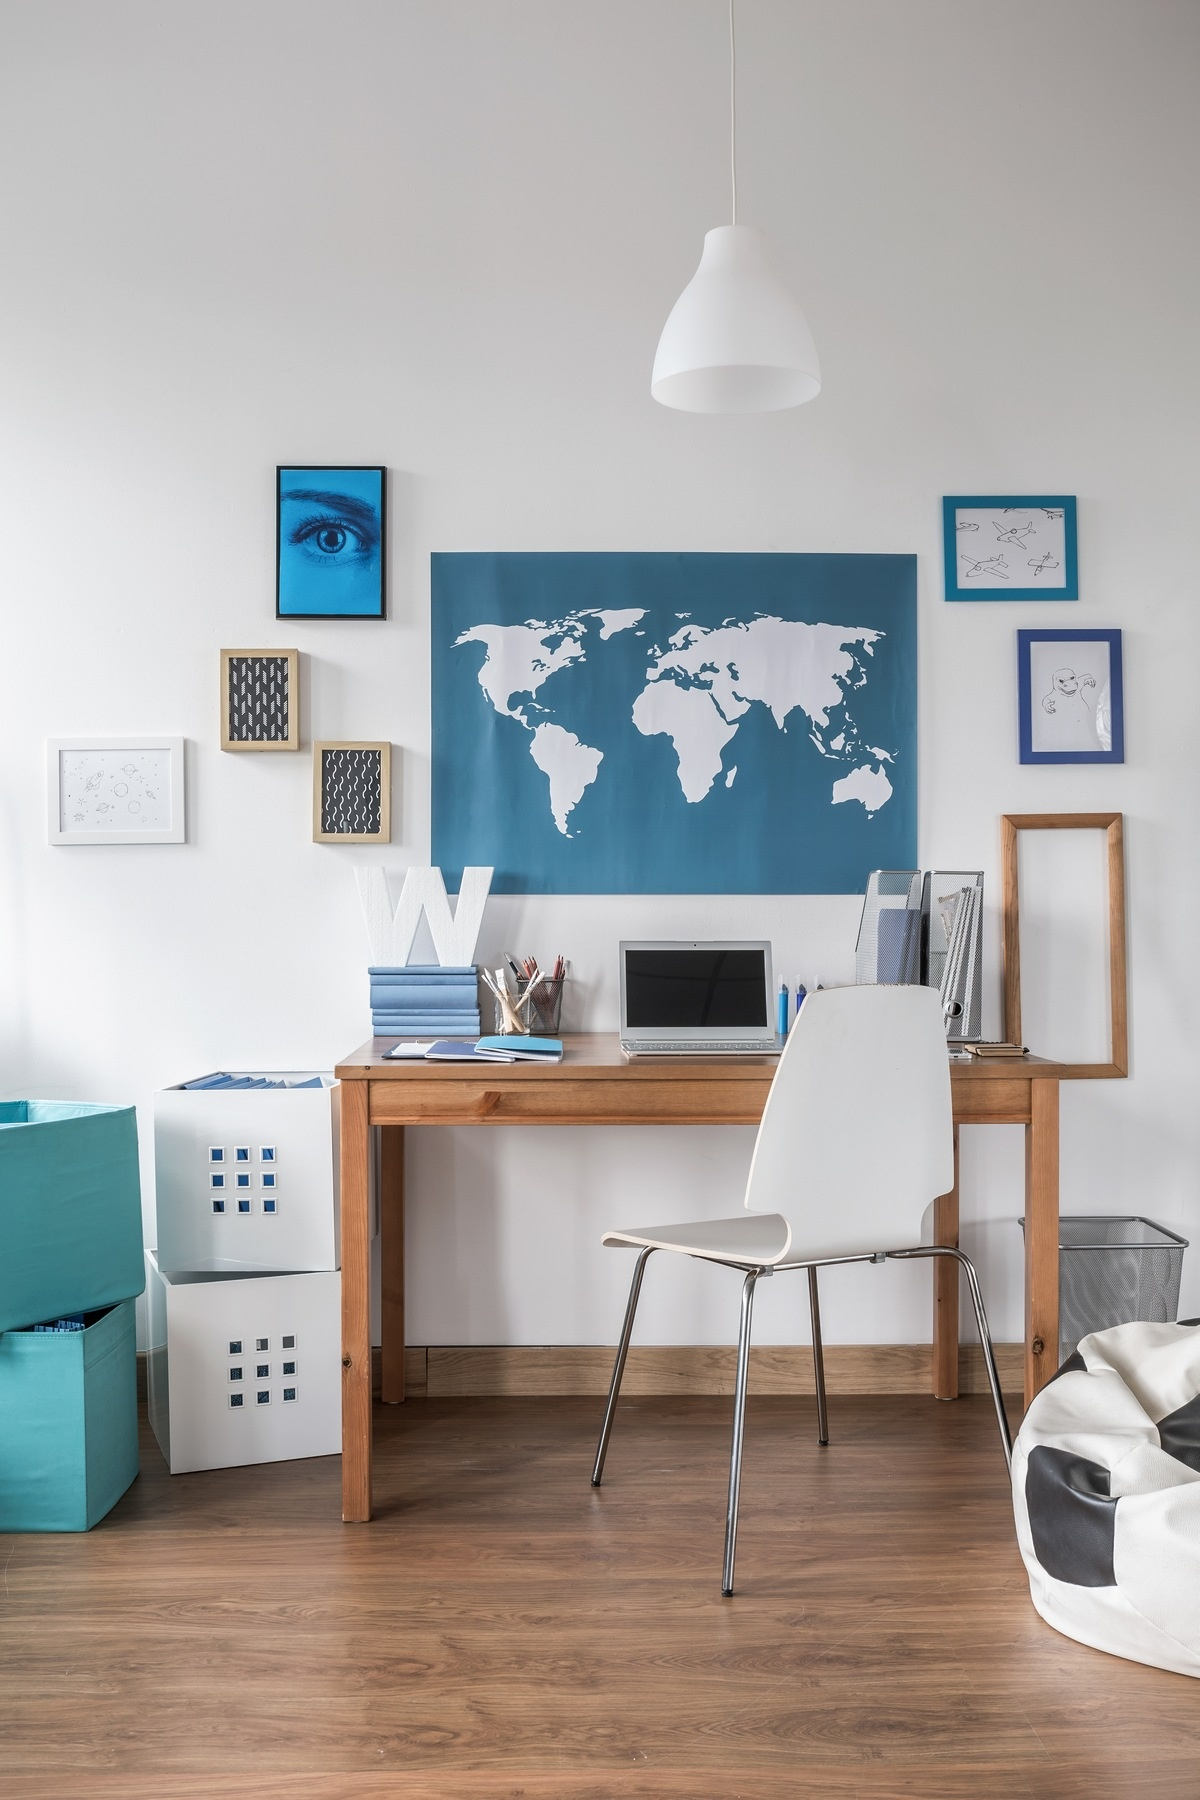 Home Office Decor Ideas - Choose a Theme